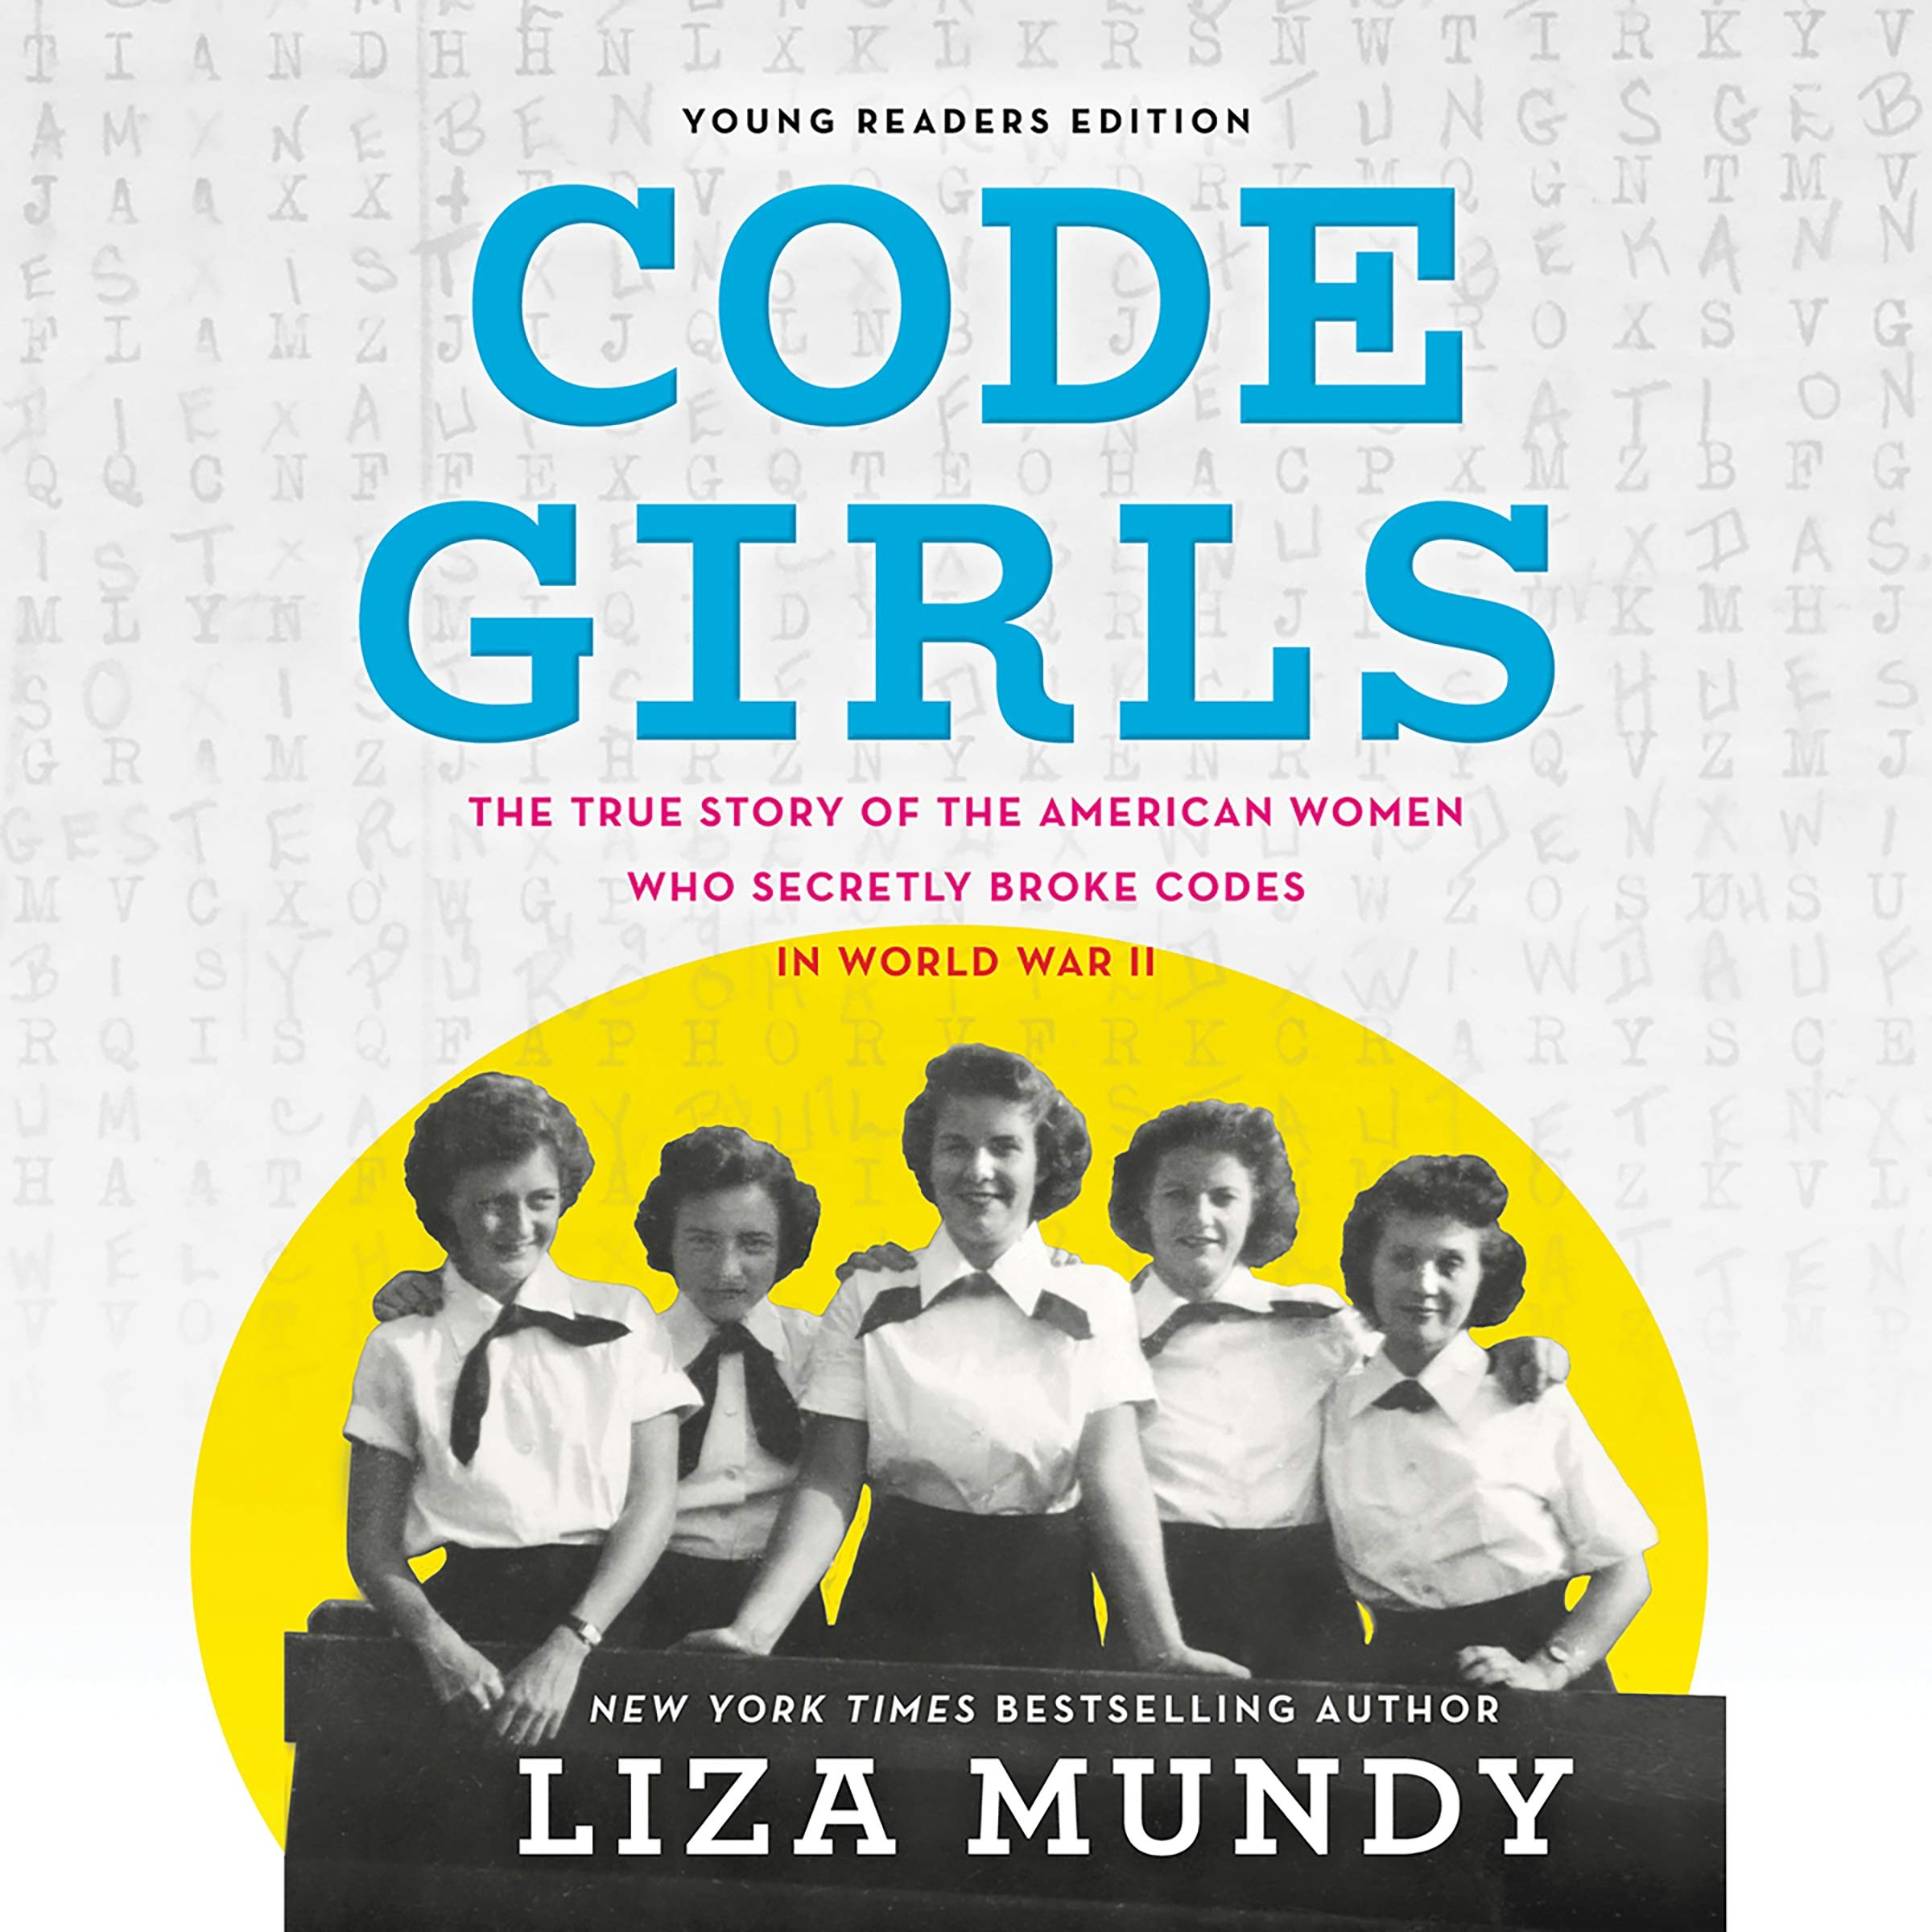 Code Girls, Young Readers Edition: The True Story of the American Women Who Secretly Broke Codes in World War II